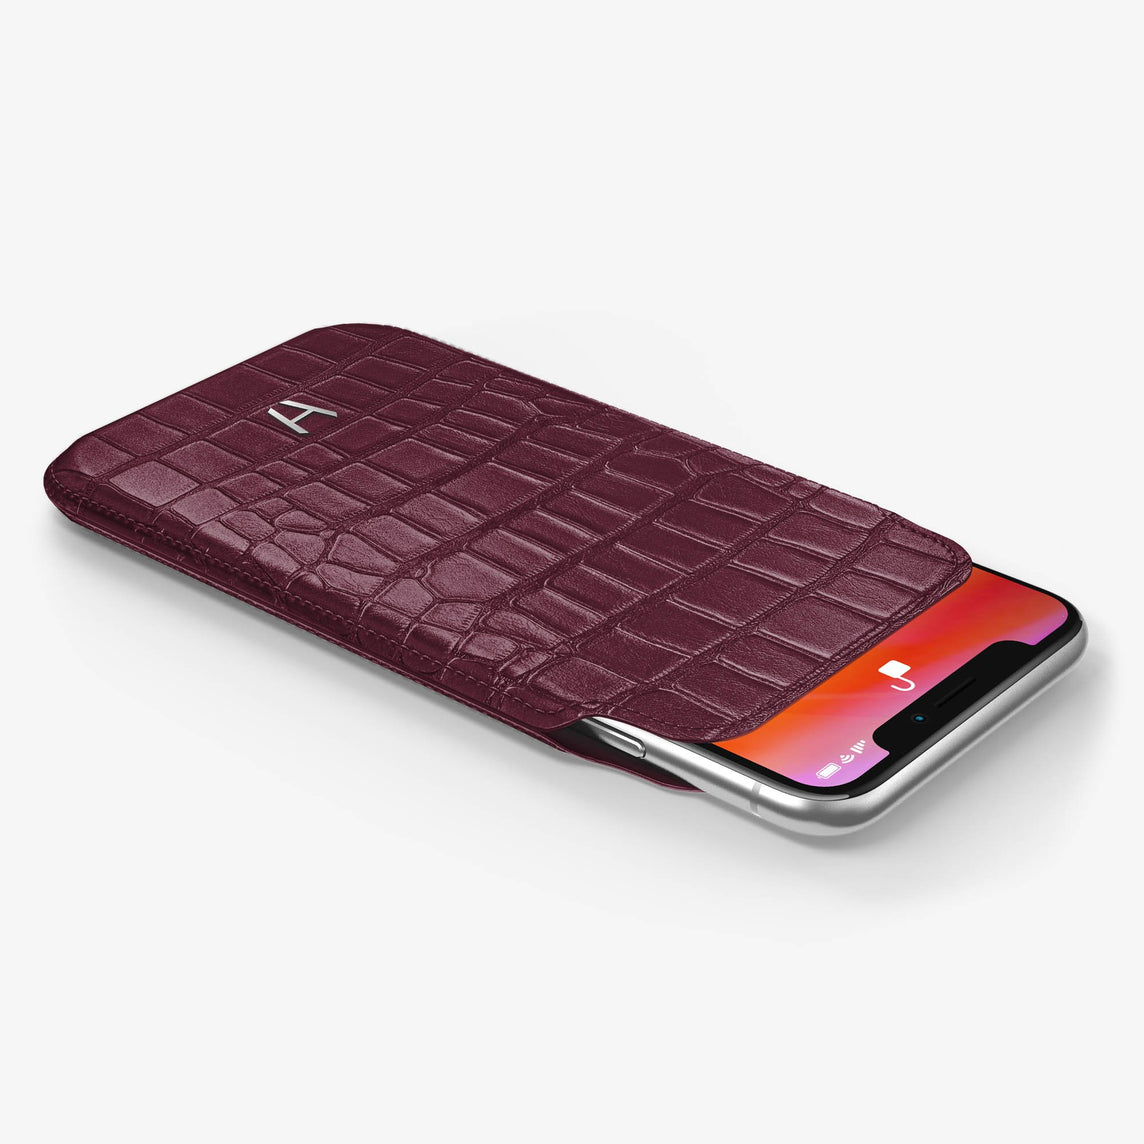 Alligator [iPhone Sleeve Case] [model:iphone-xs-case] [colour:burgundy] [finishing:stainless-steel]